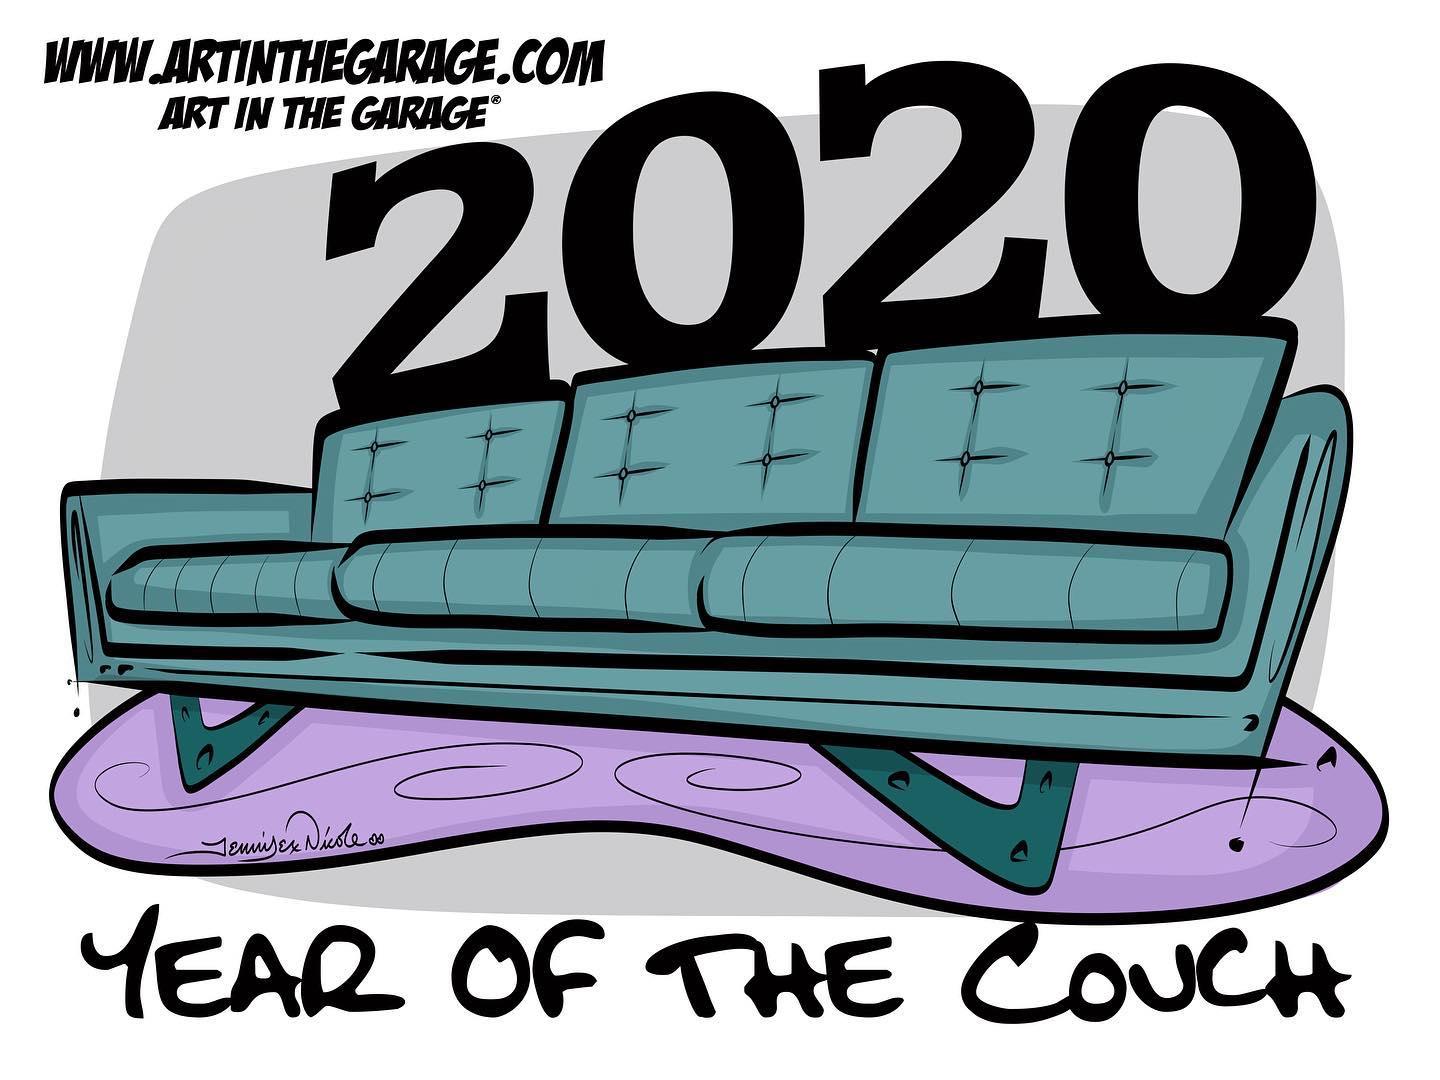 12-26-20 Year Of The Couch